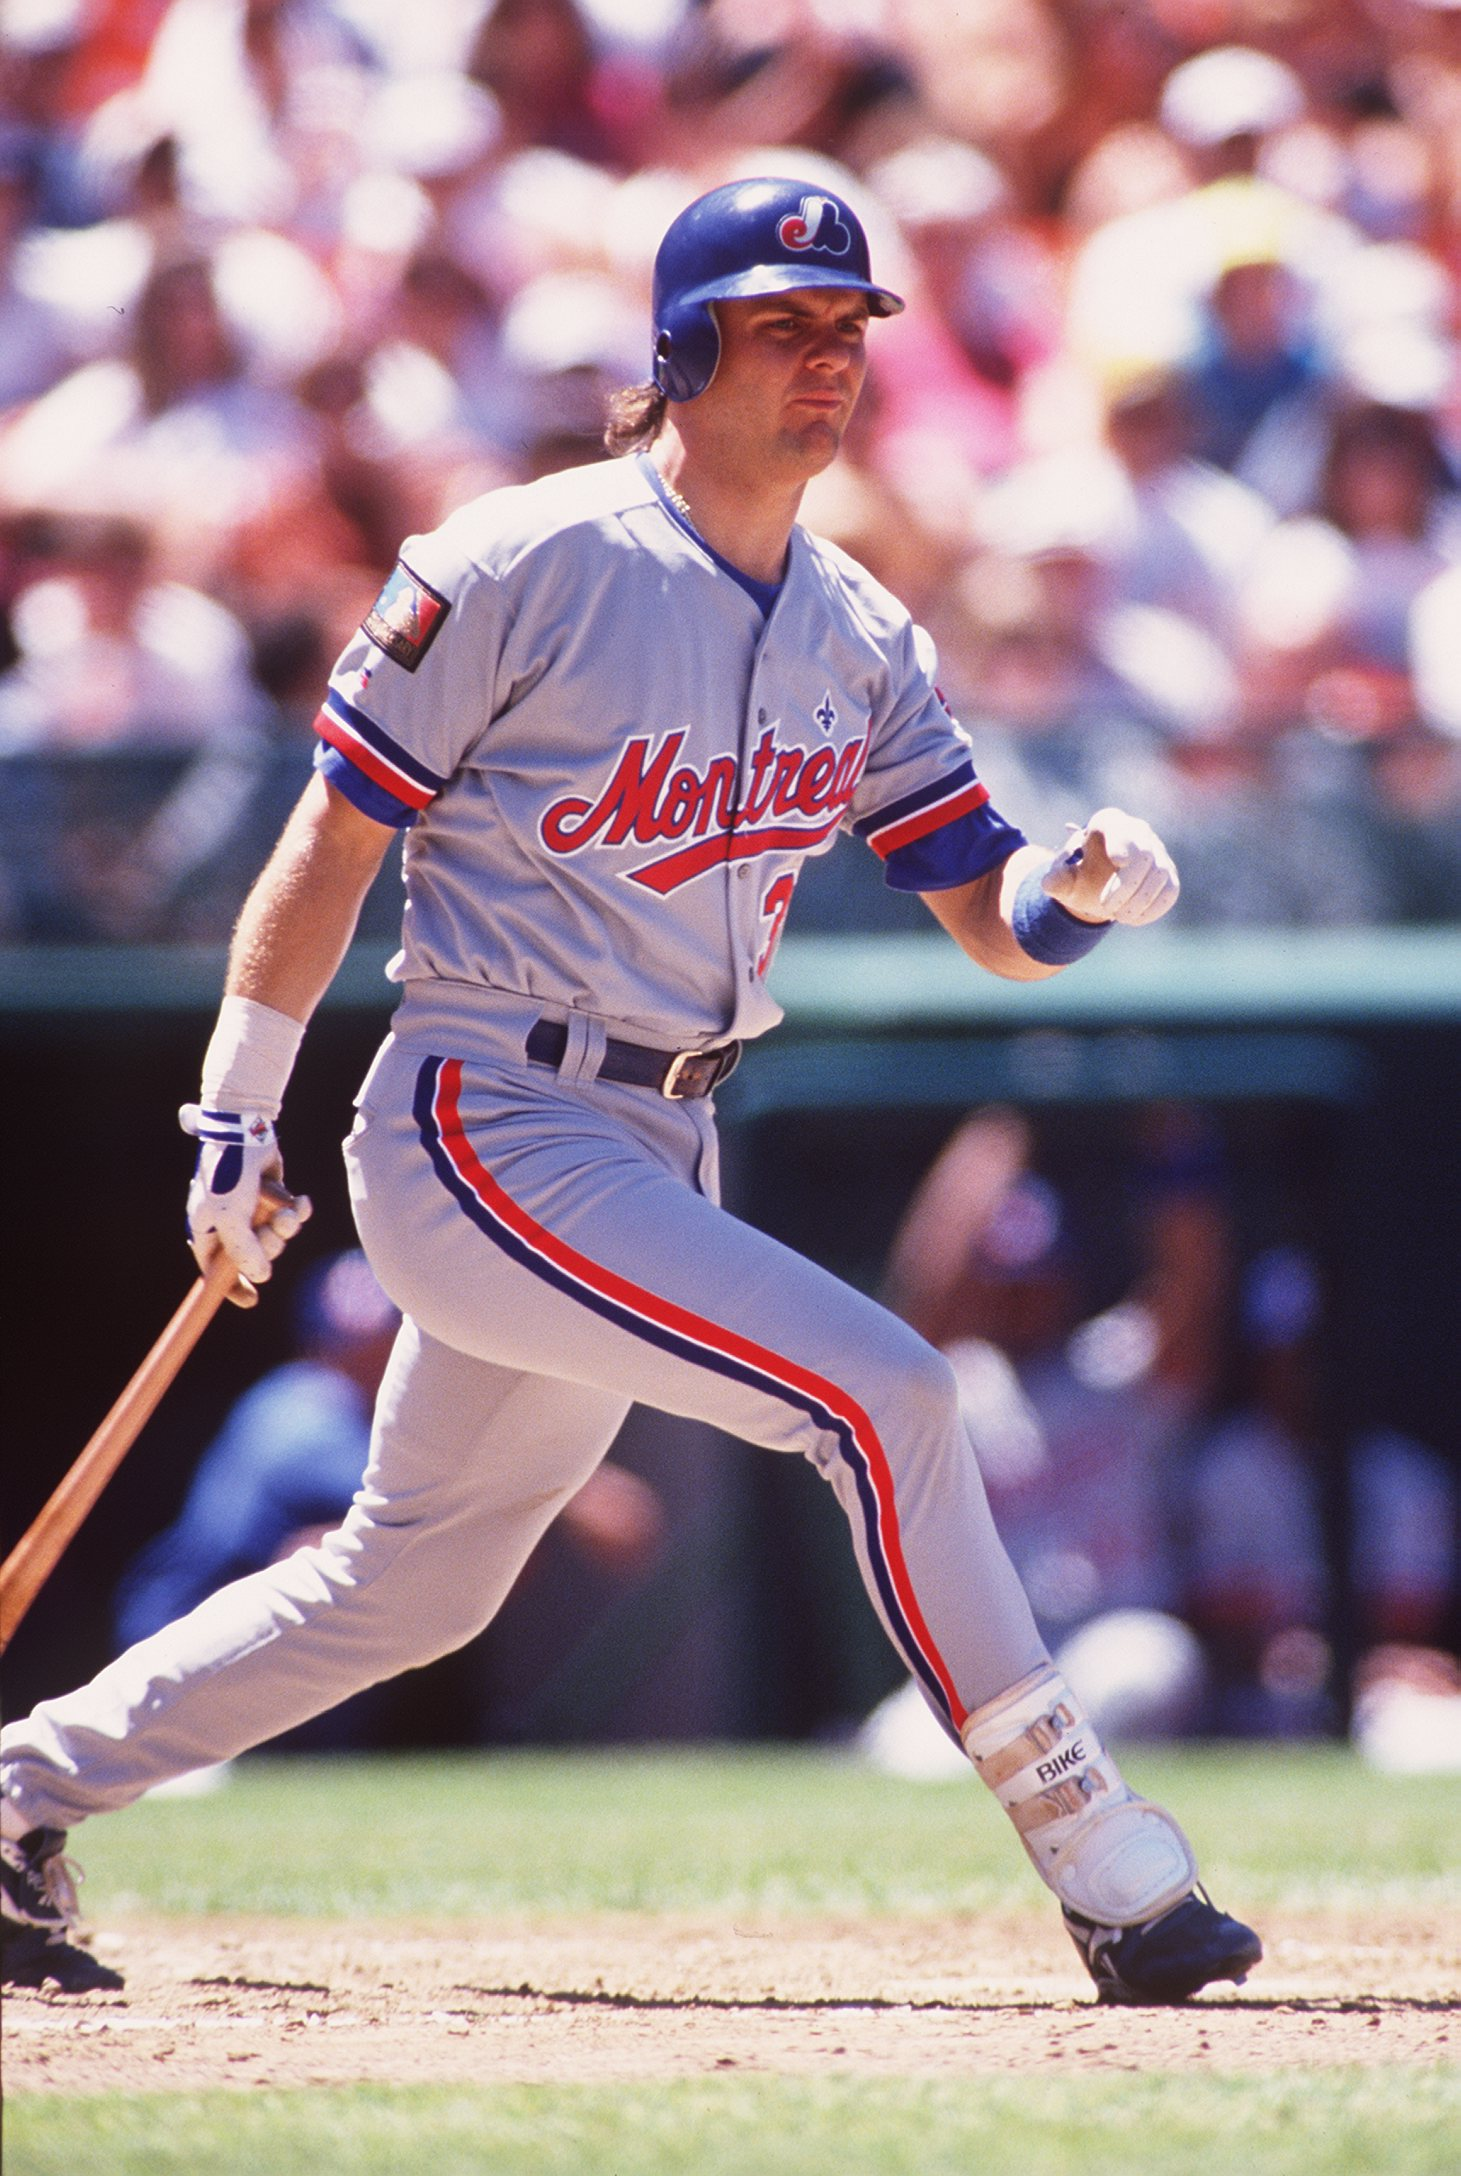 MONTREAL EXPOS OUTFIELDER LARRY WALKER BATS AGAINST THE GIANTS AT CANDLESTICK PARK IN SAN FRANCISCO.